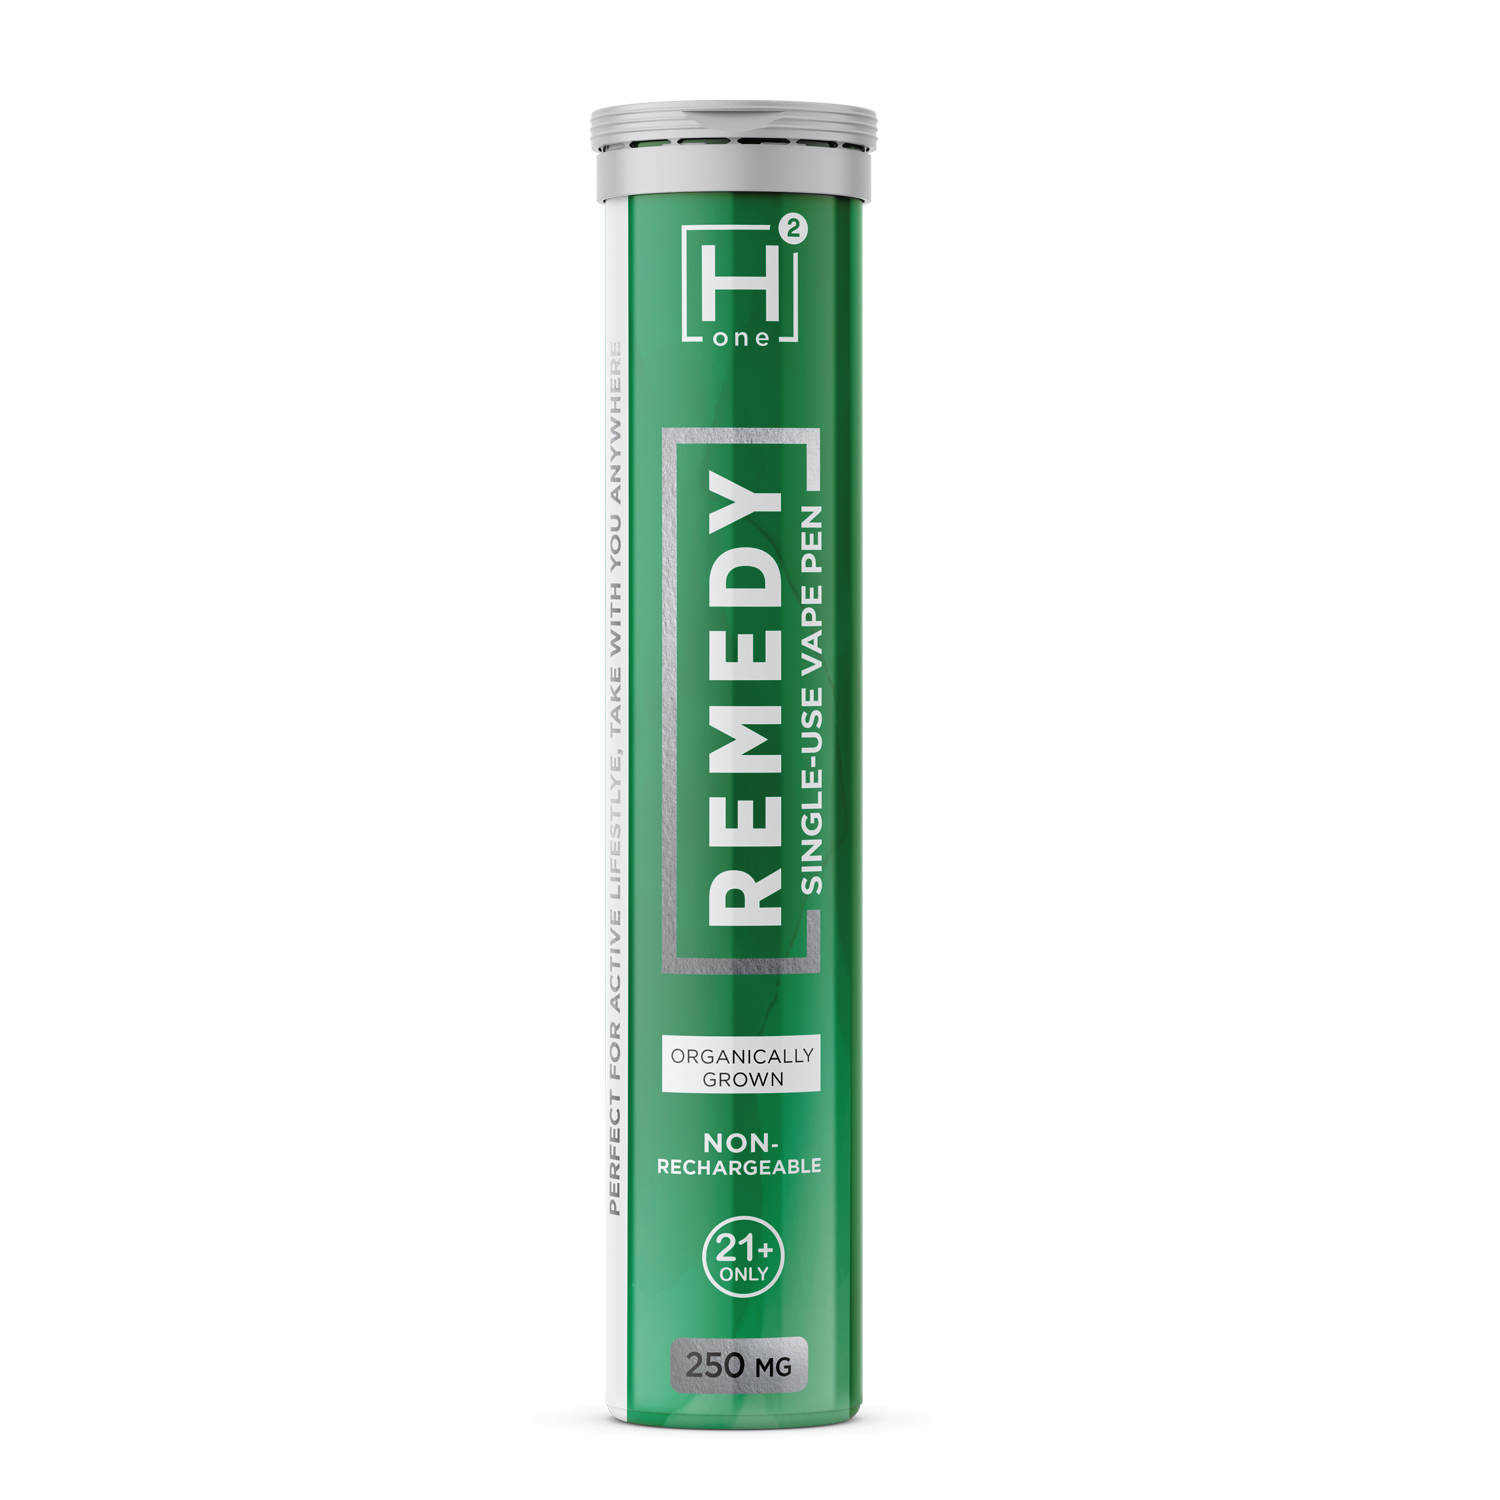 REMEDY SINGLE-USE CBD VAPE PEN - Hemp Health One